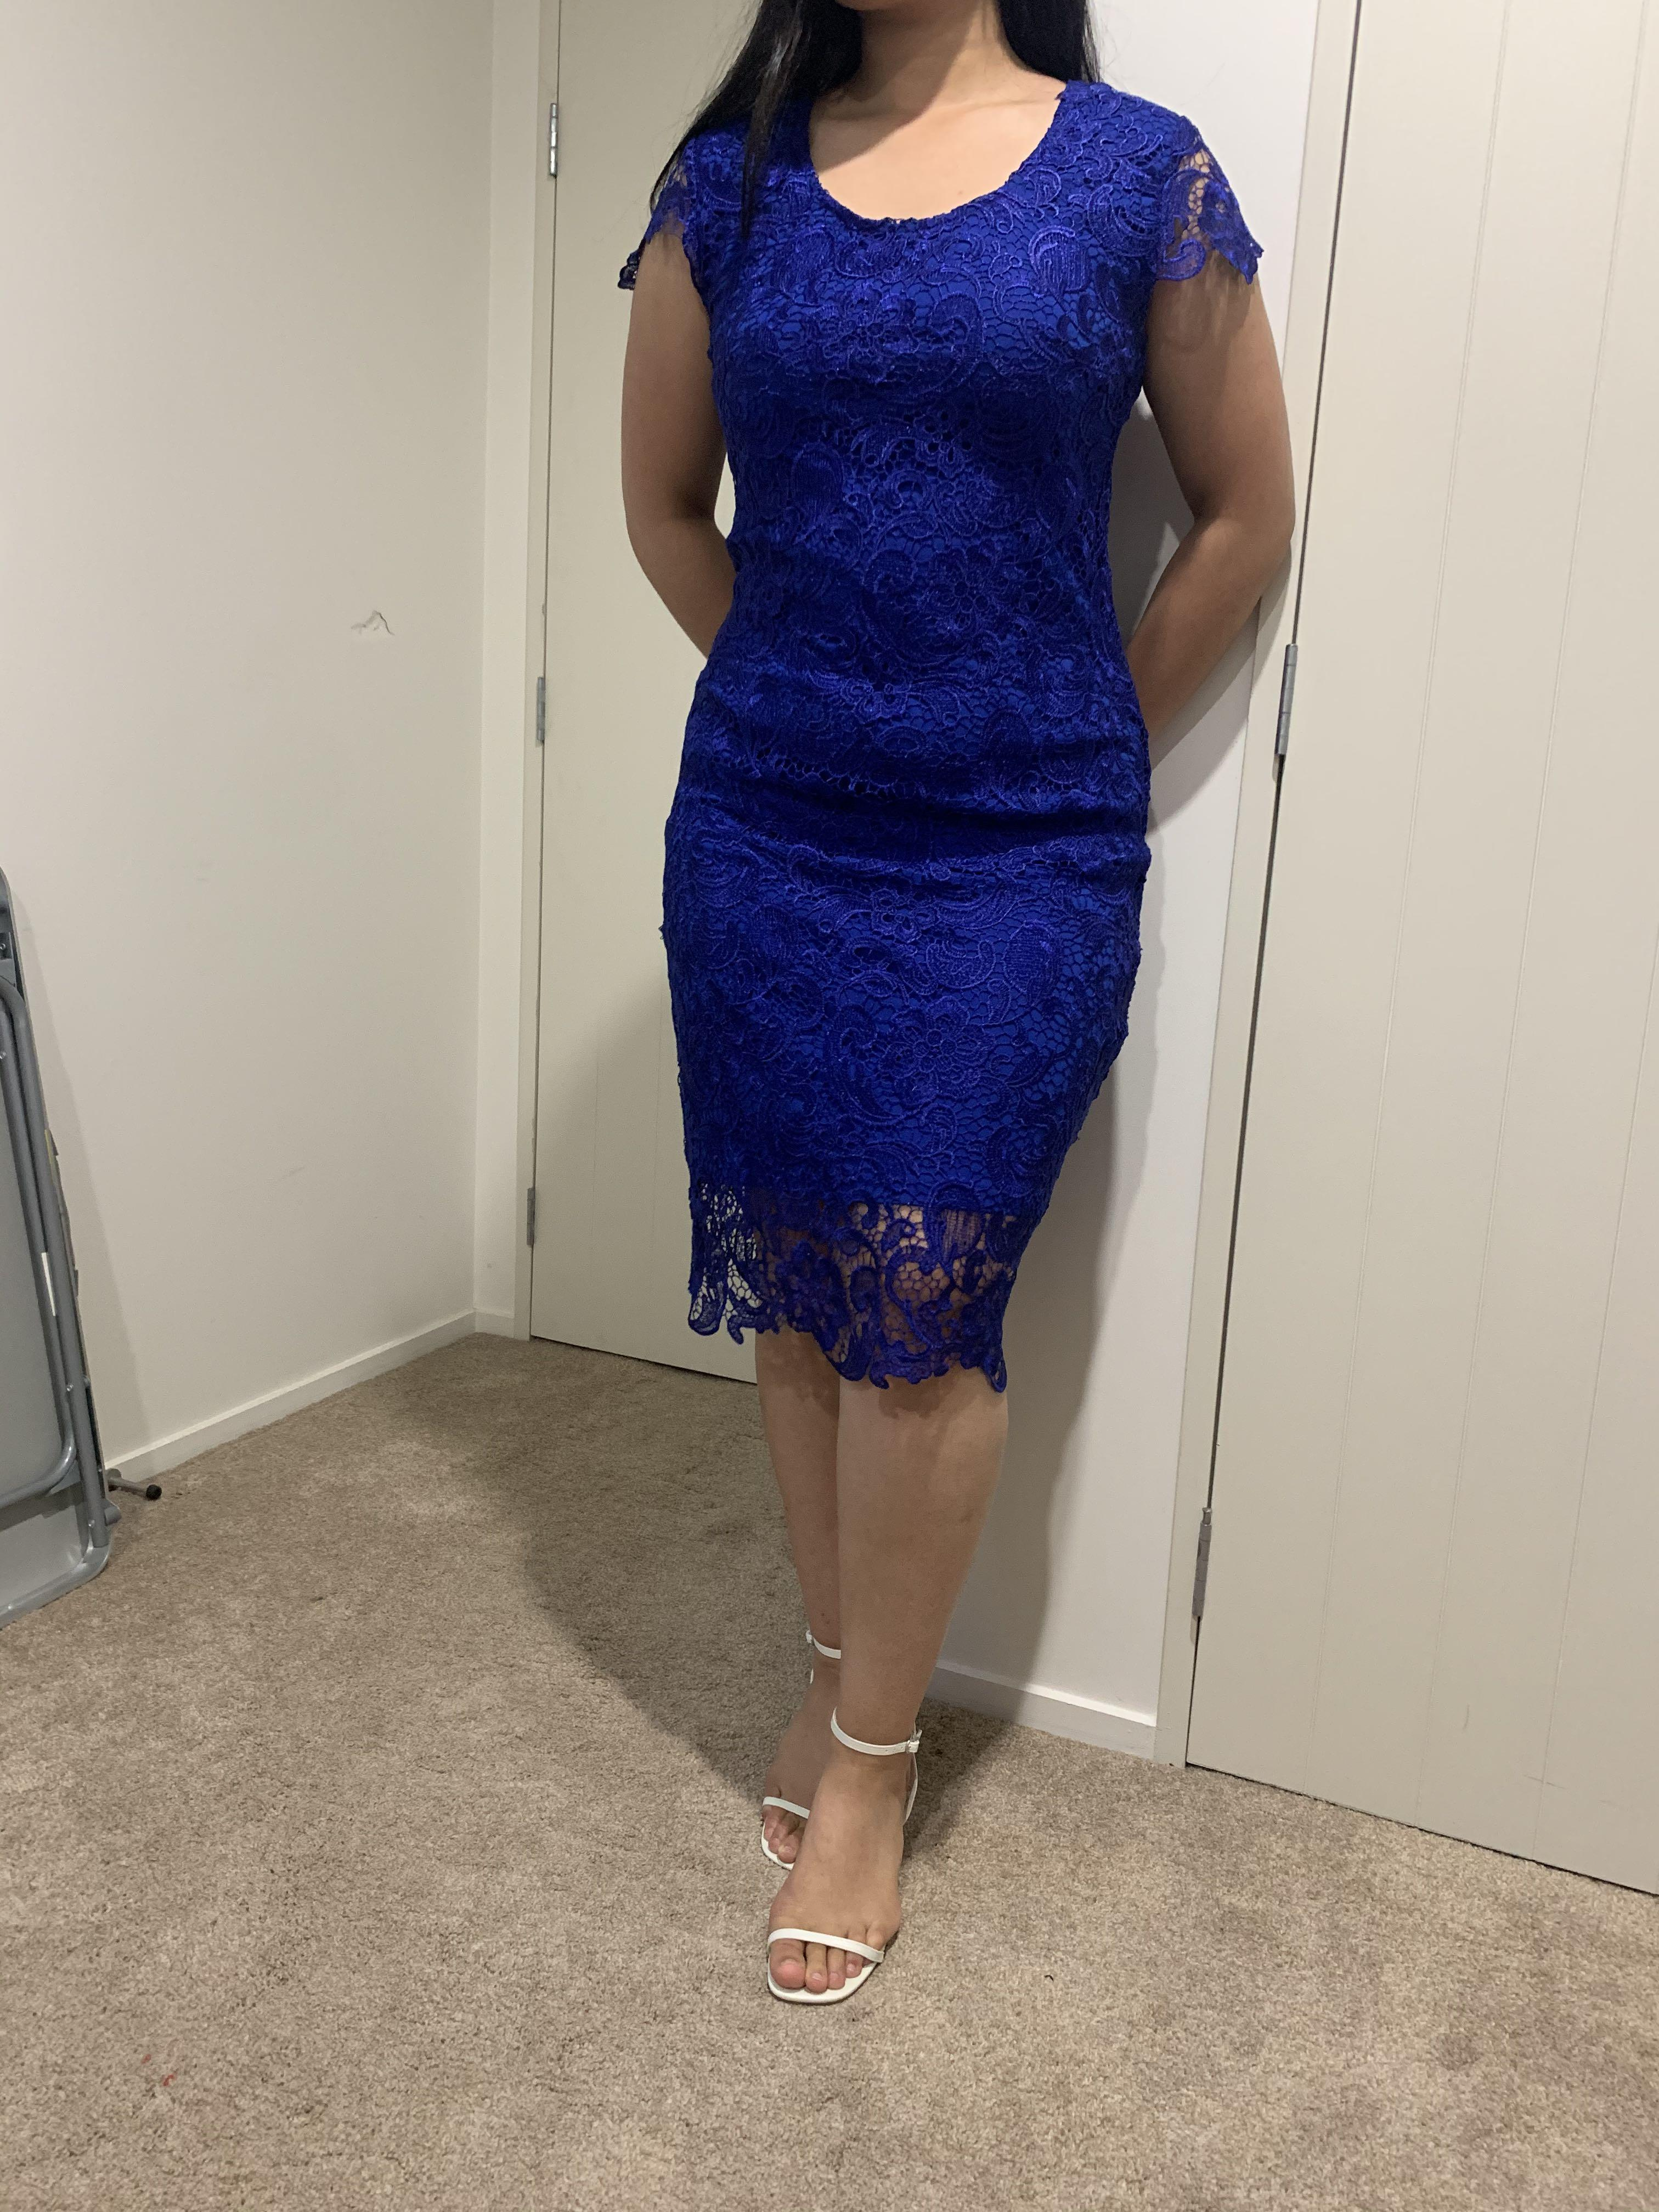 Beautiful blue lace dress, perfect for work functions coming up!